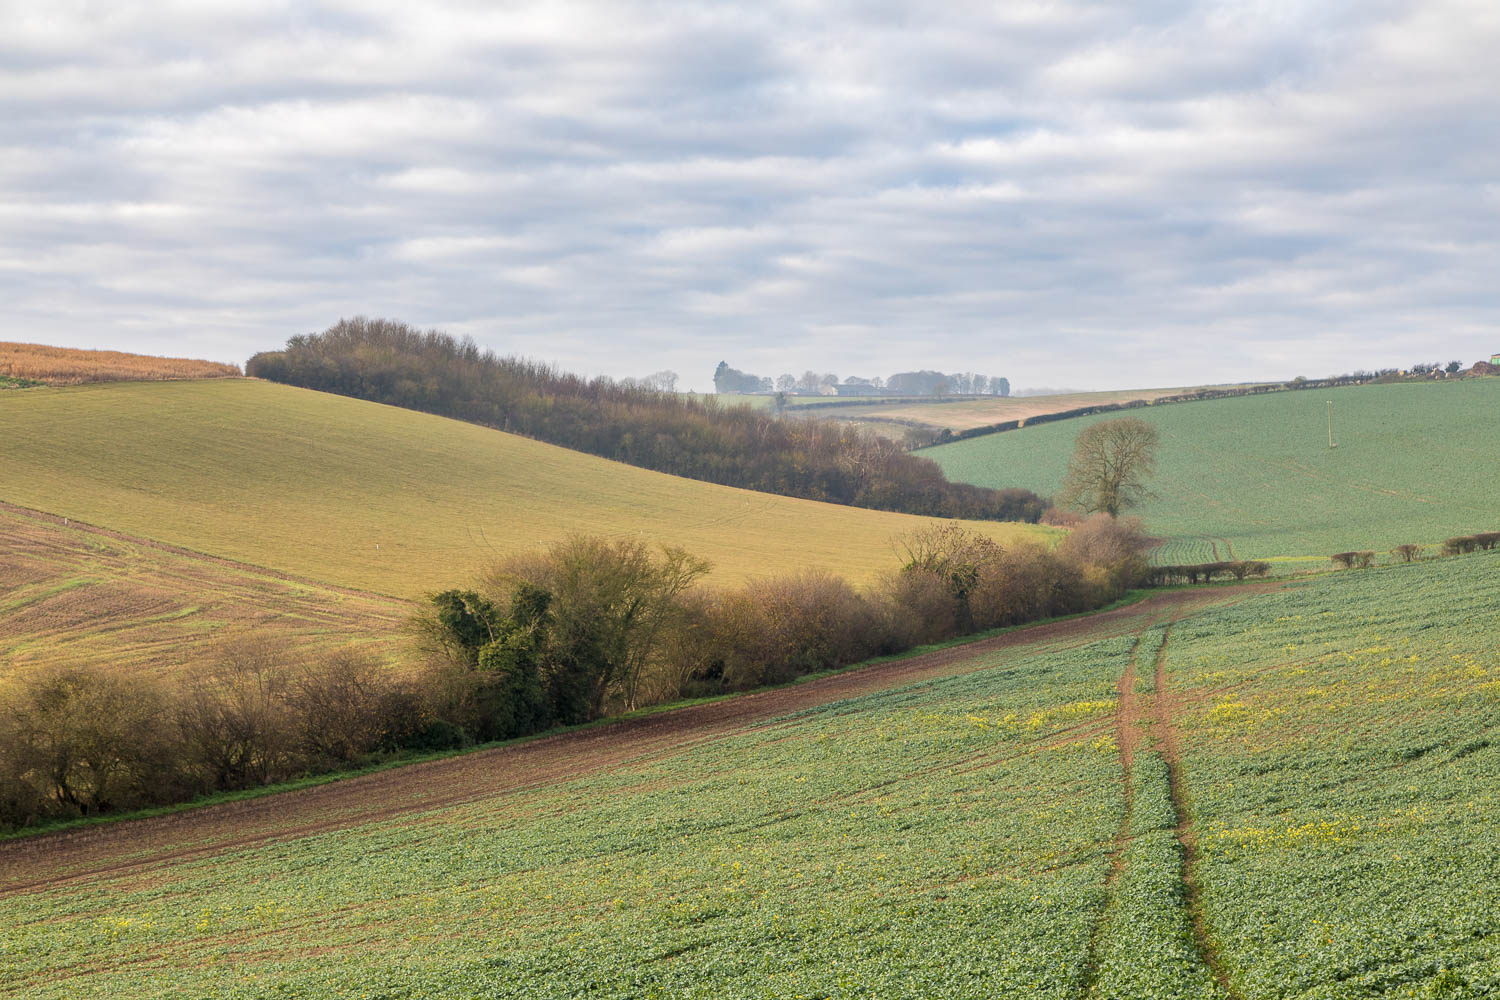 Fotherby walk, Lincolnshire Wolds walk